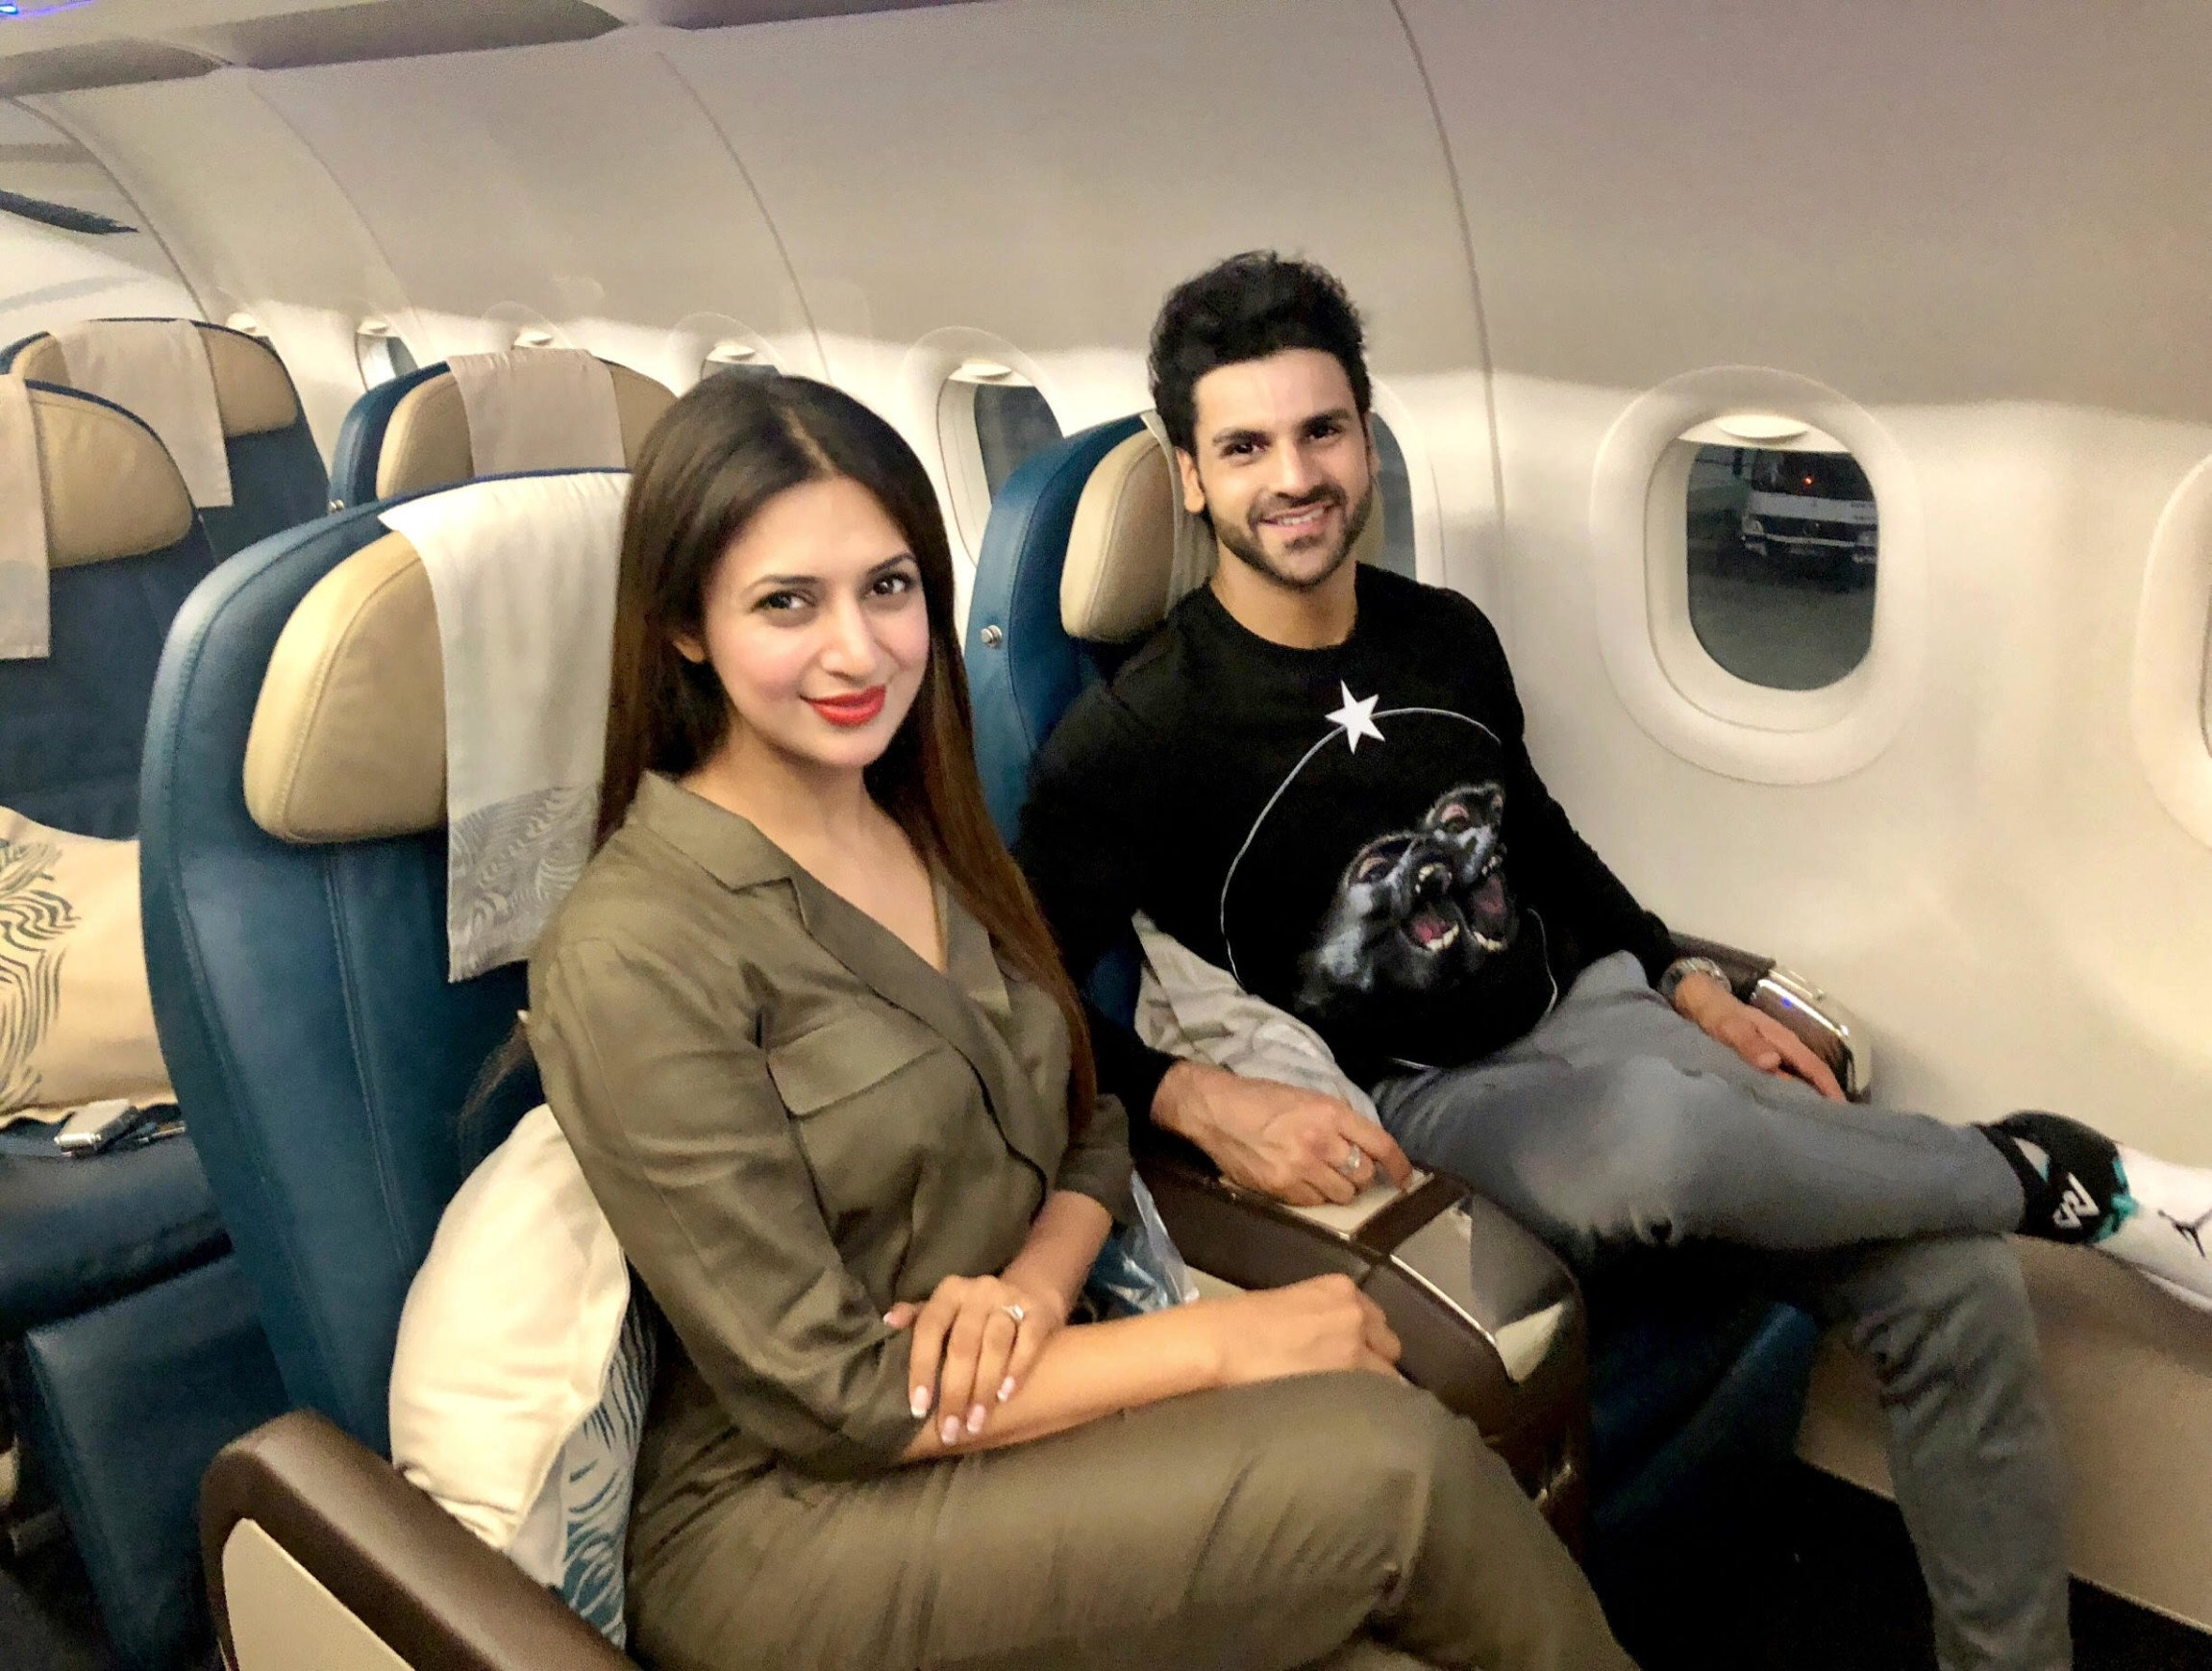 Divyanka Tripathi and Vivek Dahiya on a romantic getaway to celebrate their 2nd marriage anniversary